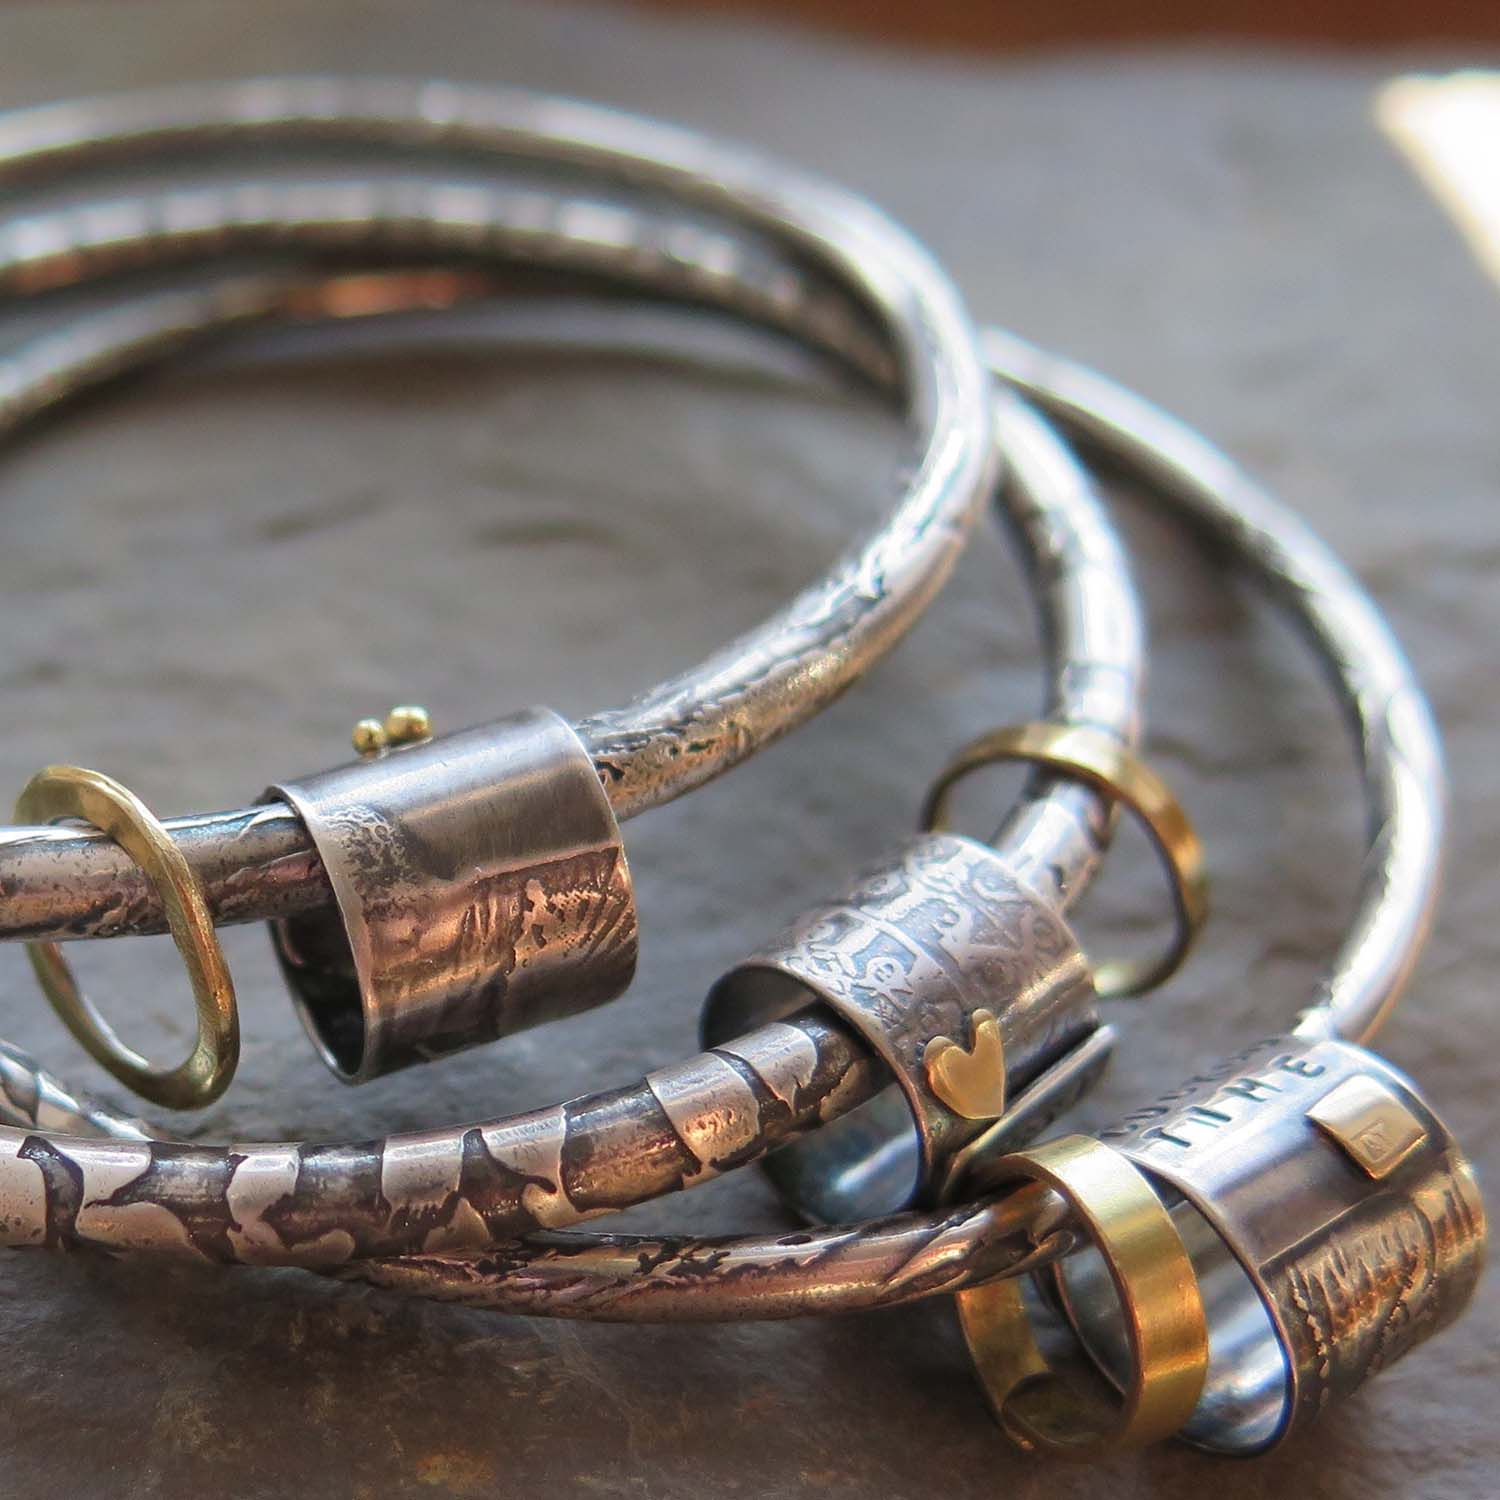 Etched and oxidised silver & gold Poetry Bangles by Ali Tregaskes